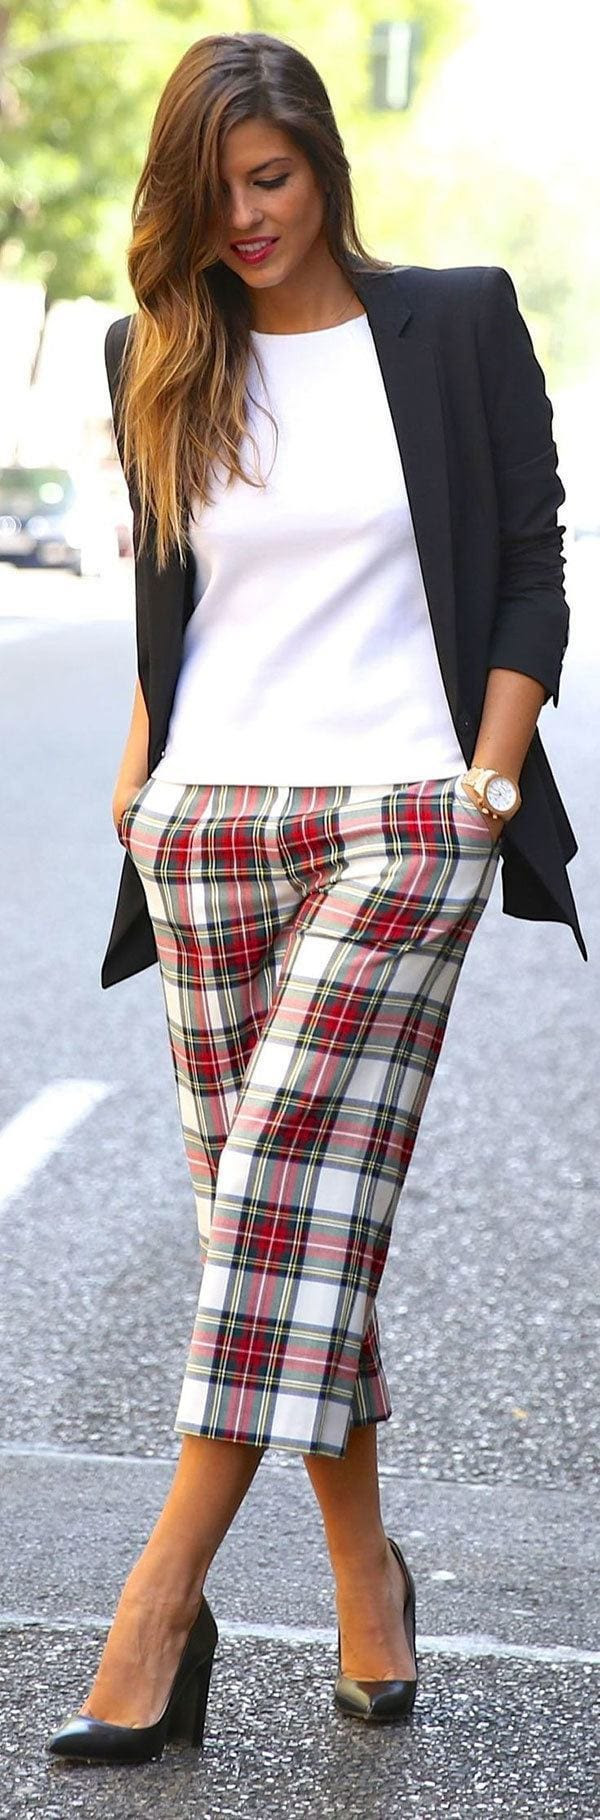 culottes outfits ideas24 ideas how to wear culottes this year